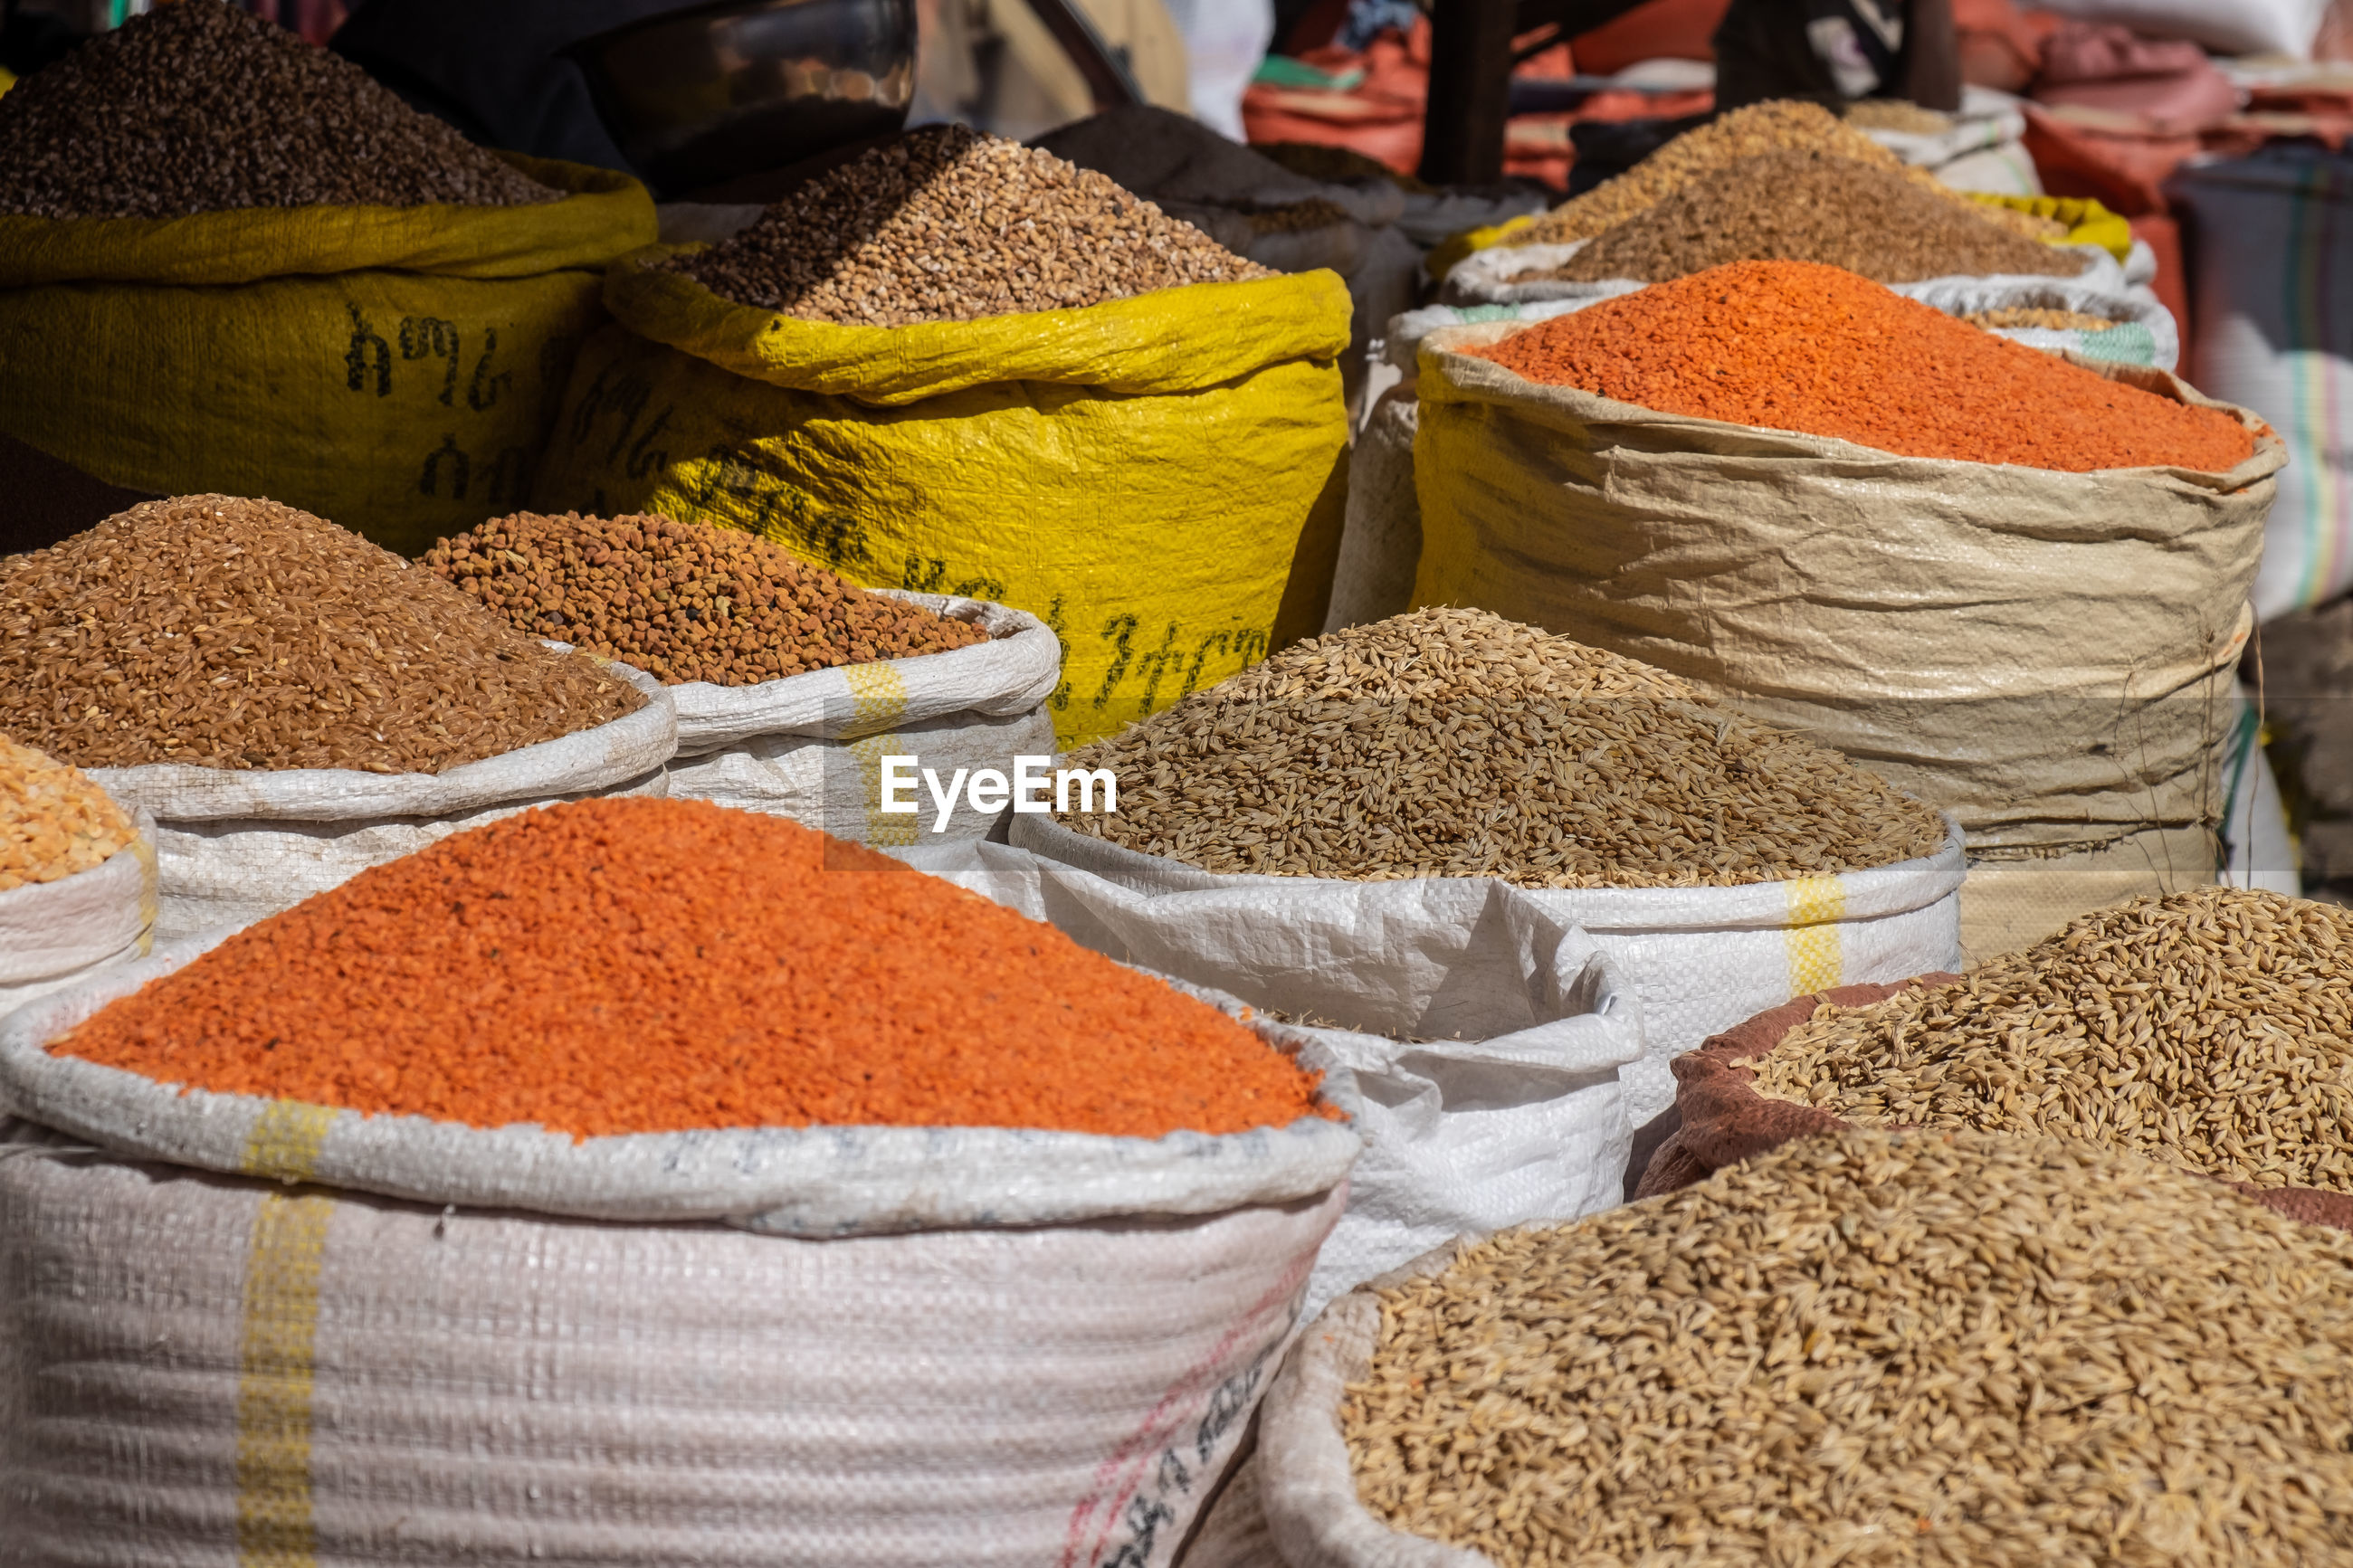 CLOSE-UP OF SPICES FOR SALE IN MARKET